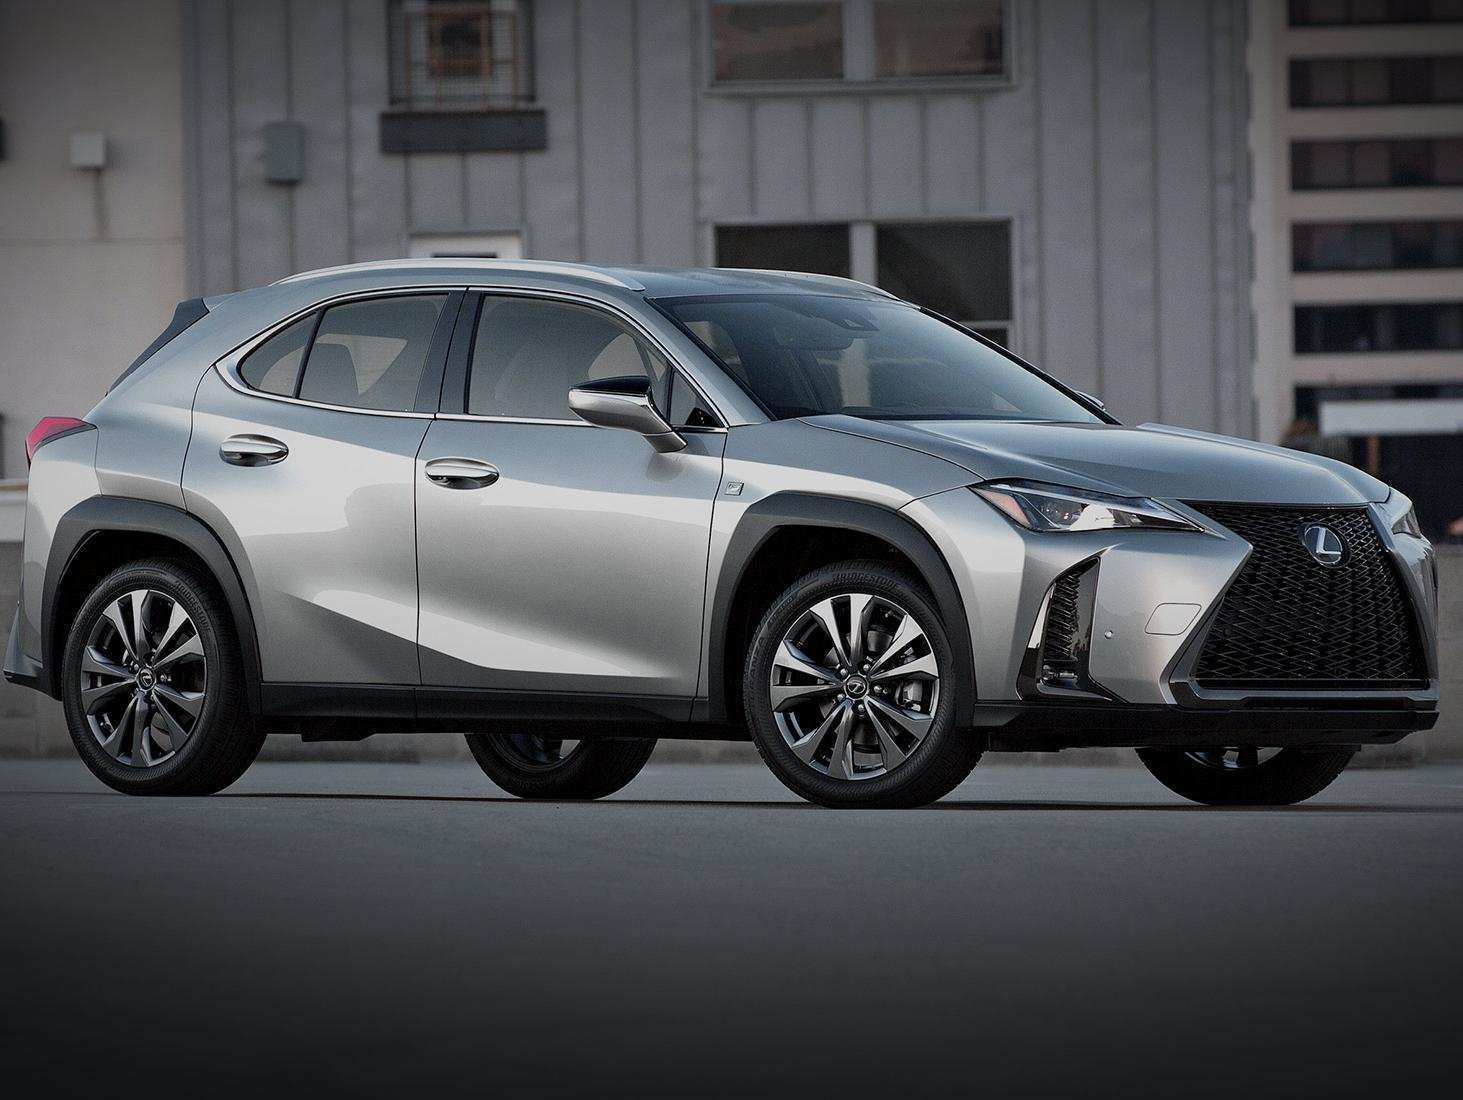 74 All New 2019 Lexus Ux Release Date Speed Test